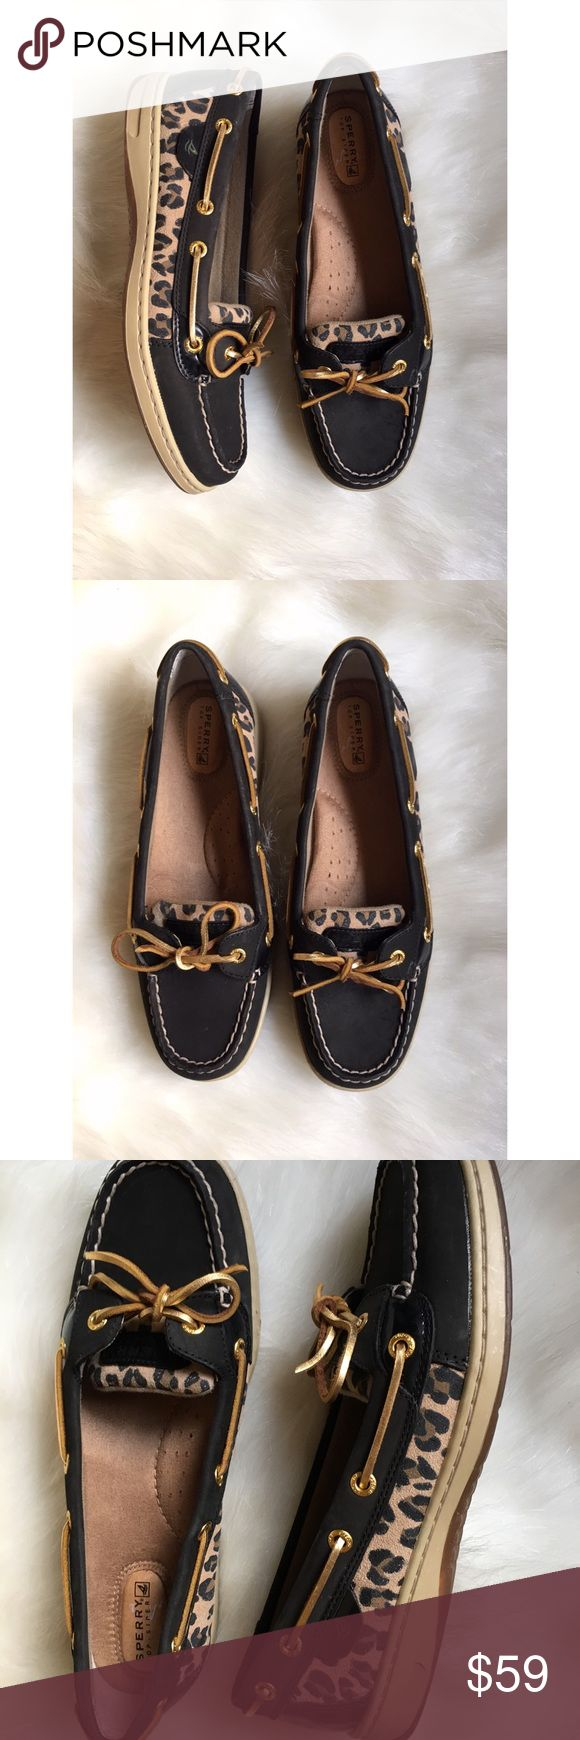 Sperry Top Sider cheetah print slip-on boat shoes Adorable and in amazing condition! No trades. Sperry Shoes Flats & Loafers